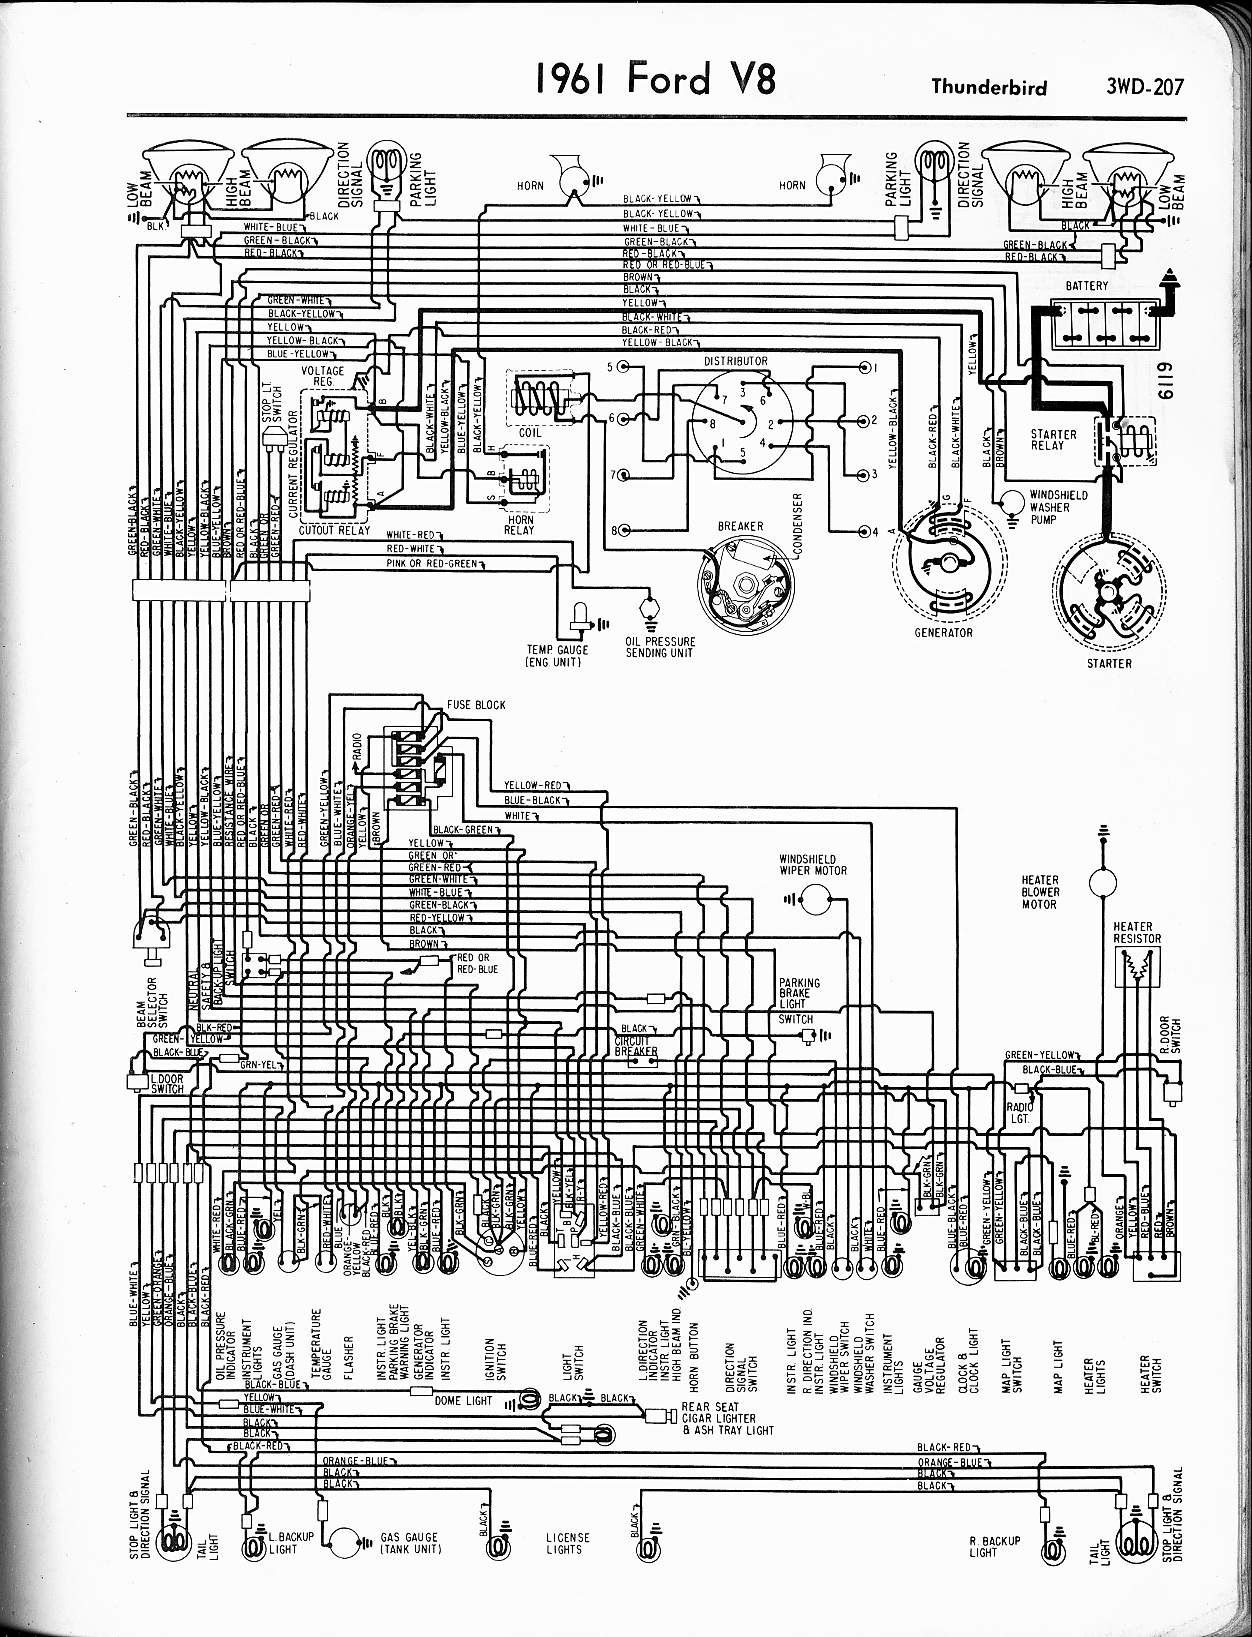 1960 Ford F100 Wiring Diagram | Wiring Diagram Fan Wiring Diagram For F on